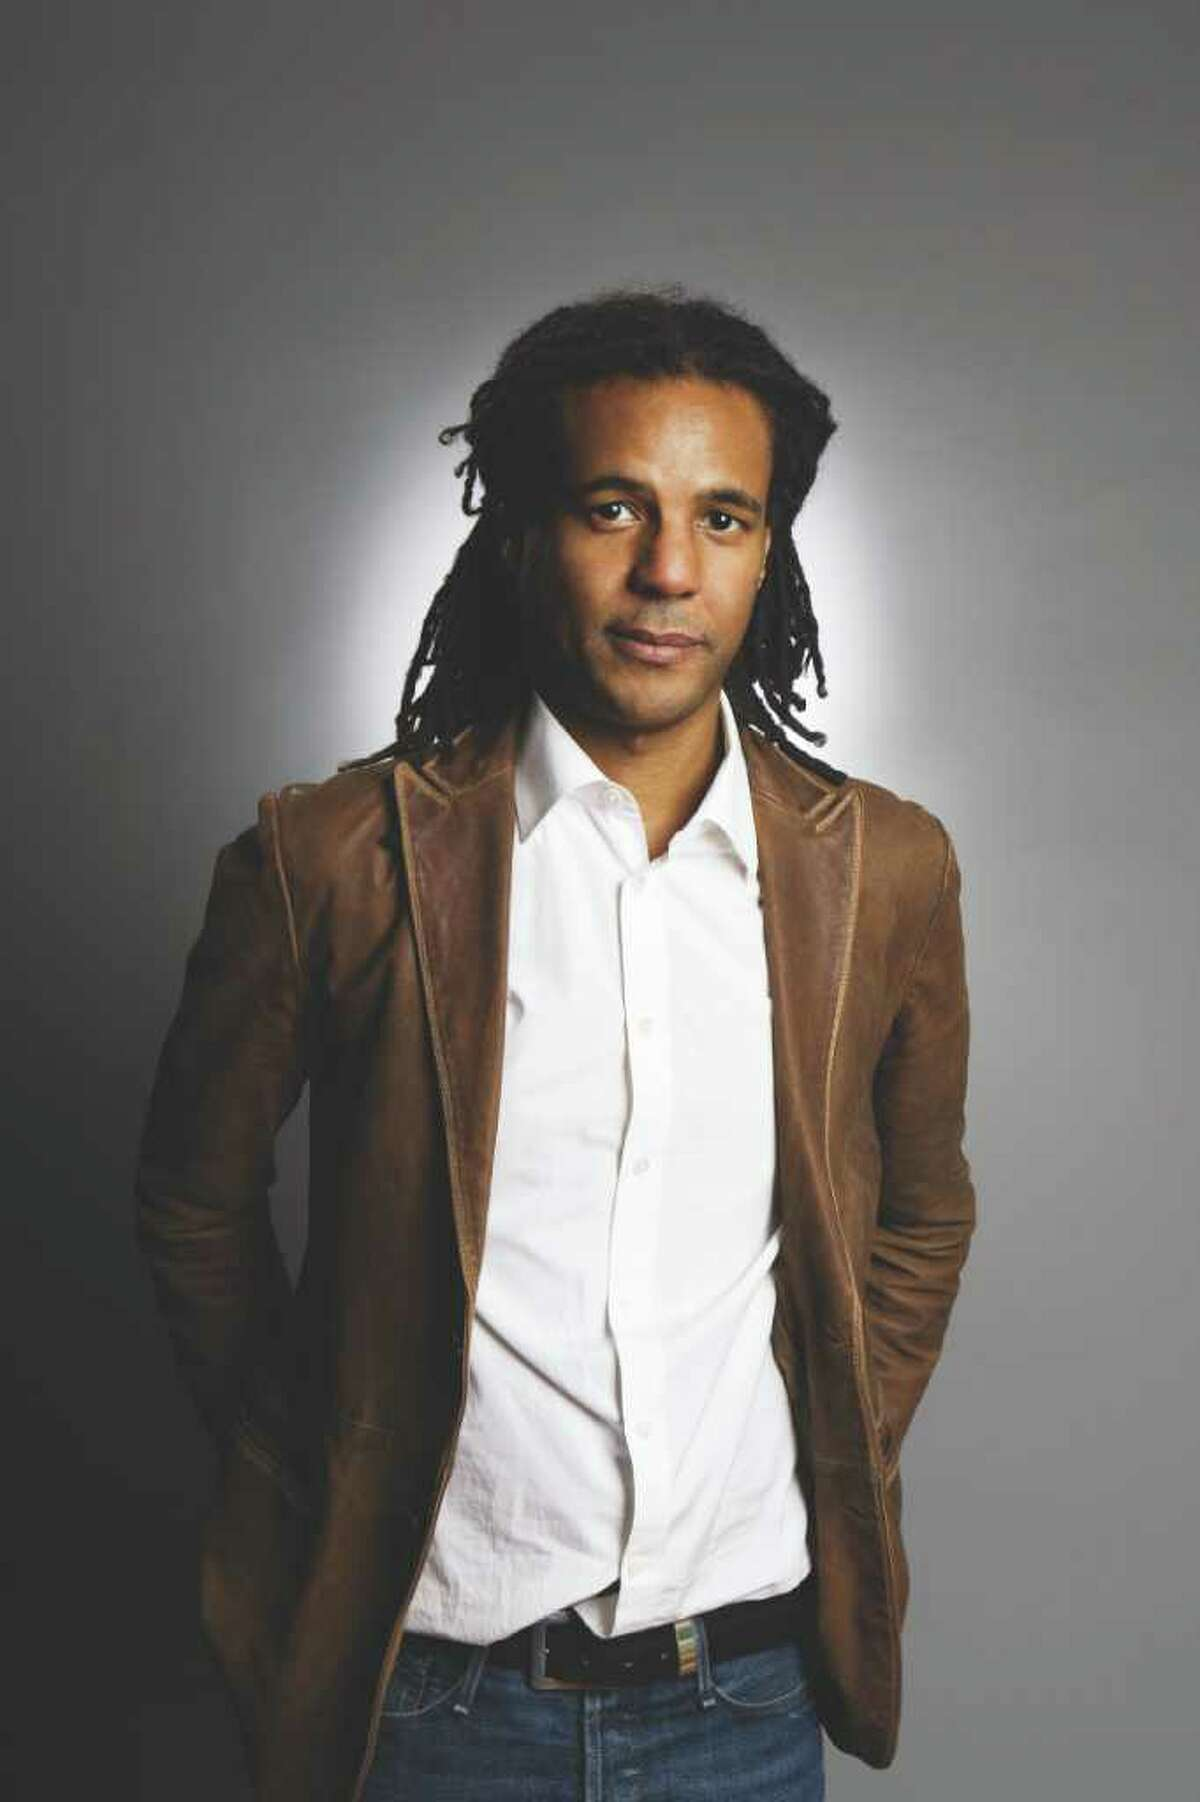 Image of author Colson Whitehead, who wrote Sag Harbor and the Oct. 2011 release, Zone One.